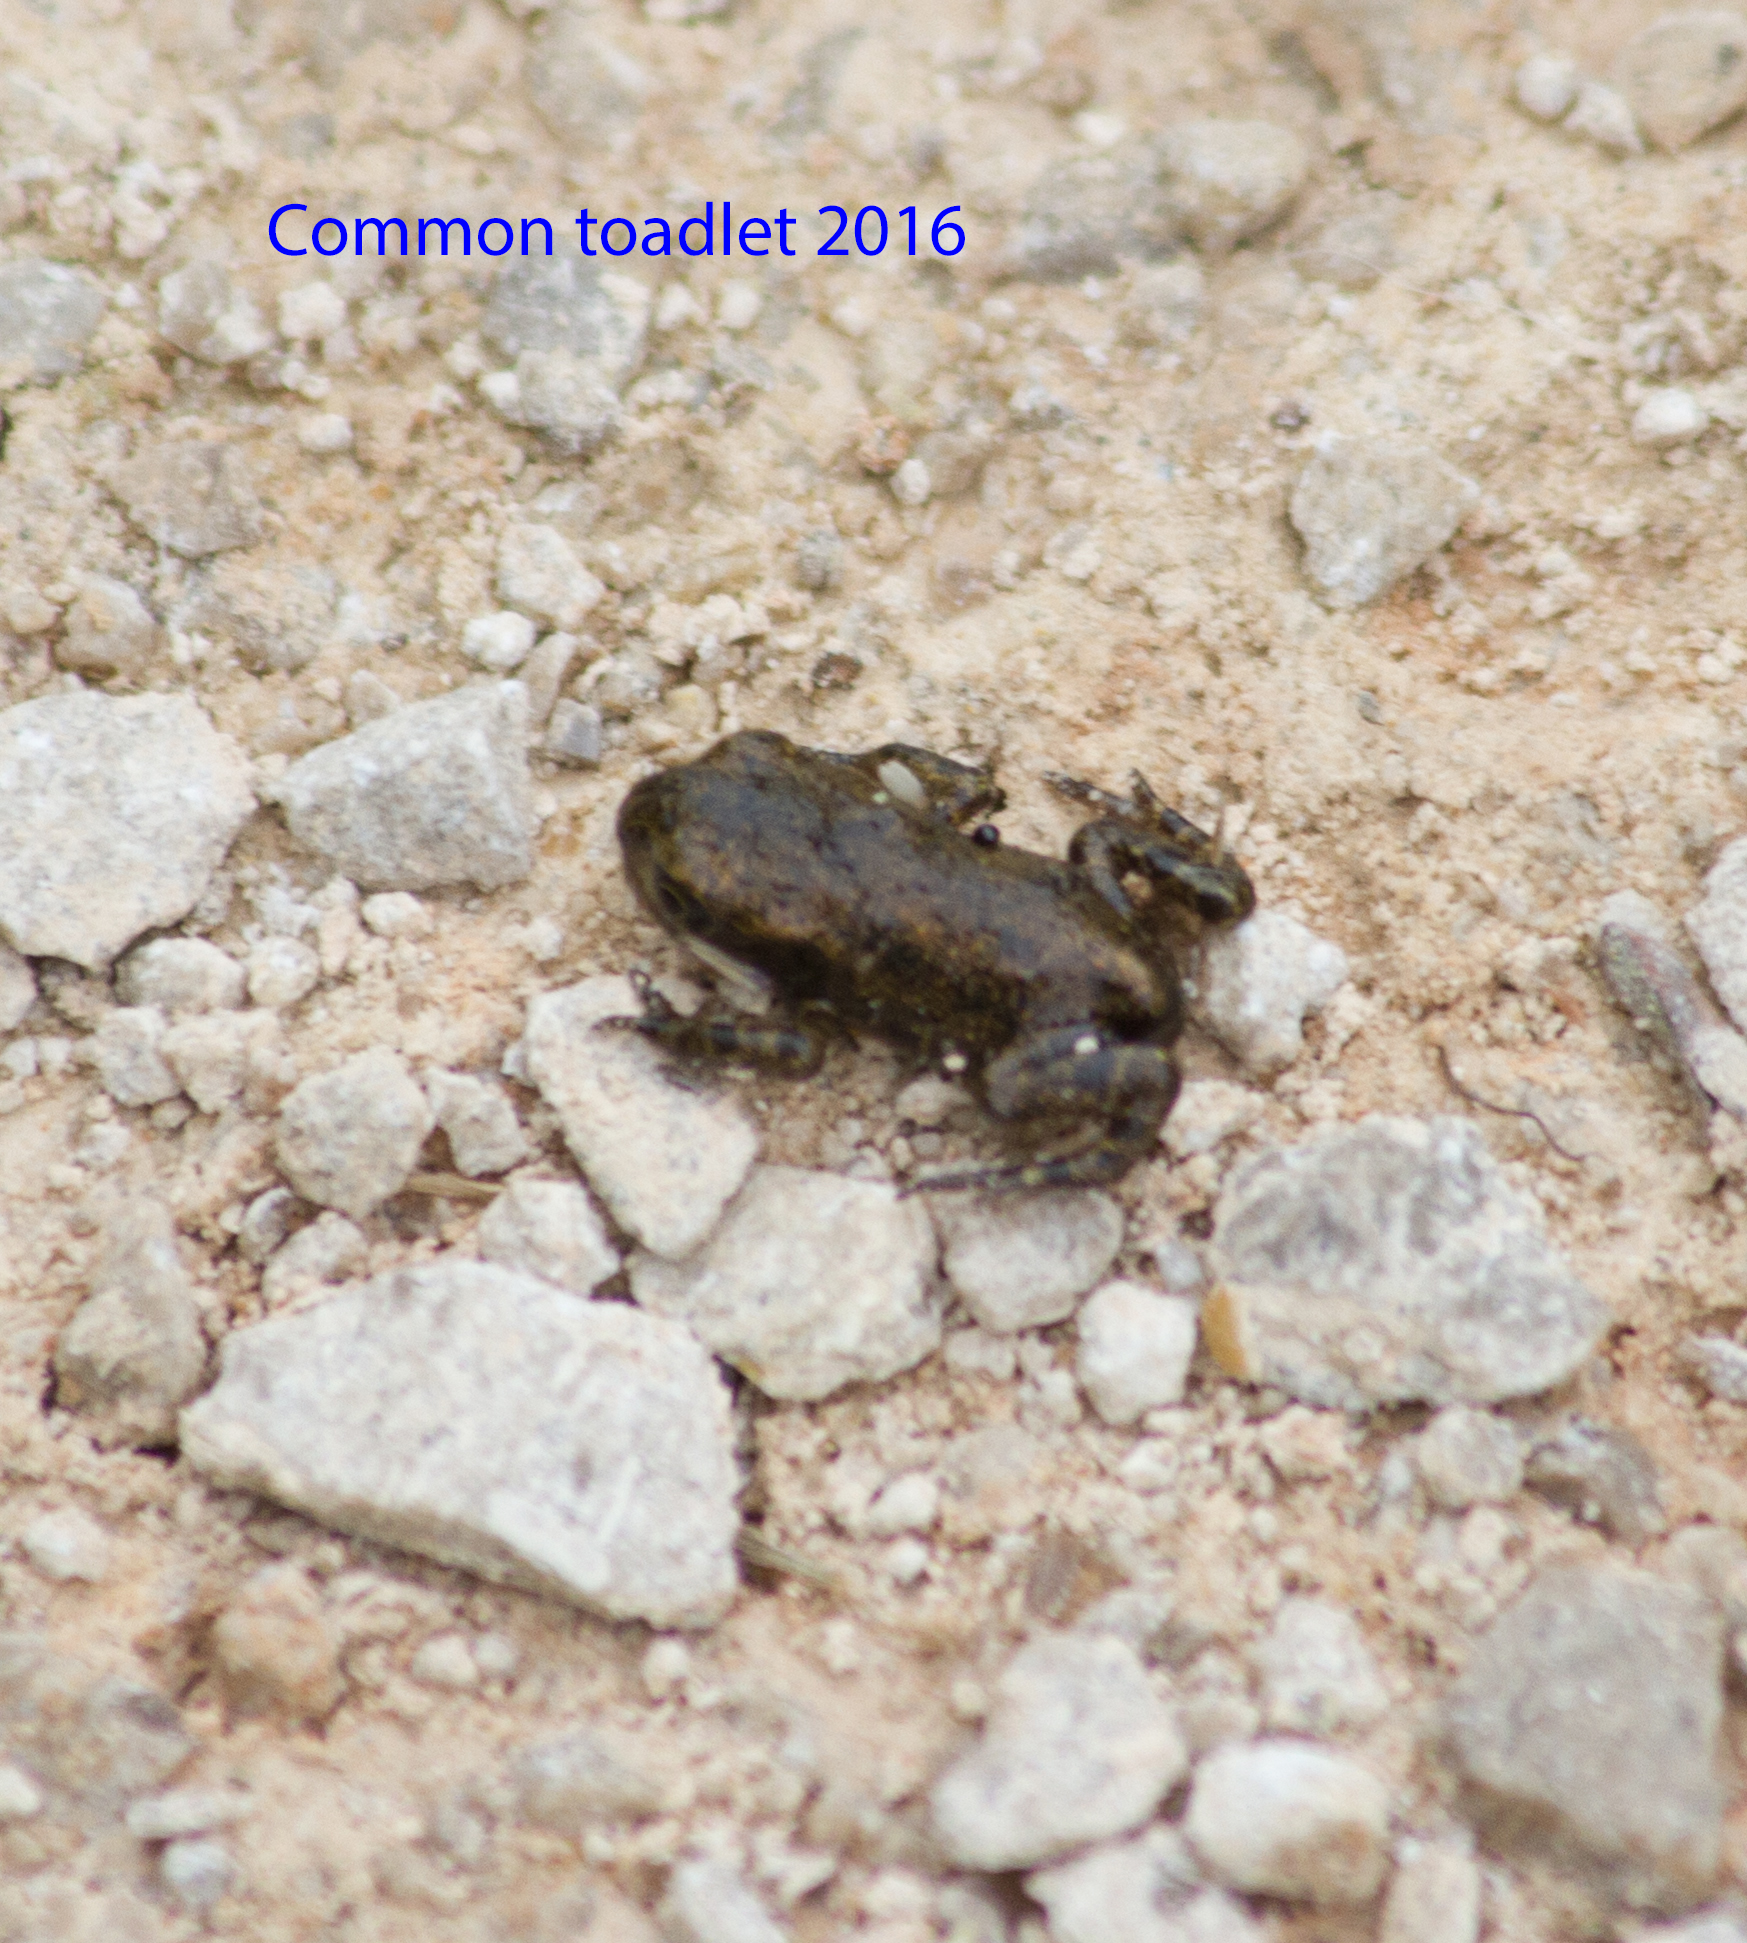 img_2320-common-toadlet-19th-june-2016-1-1-1d294a67001e30b0b570be08b9ca7567800b1b94